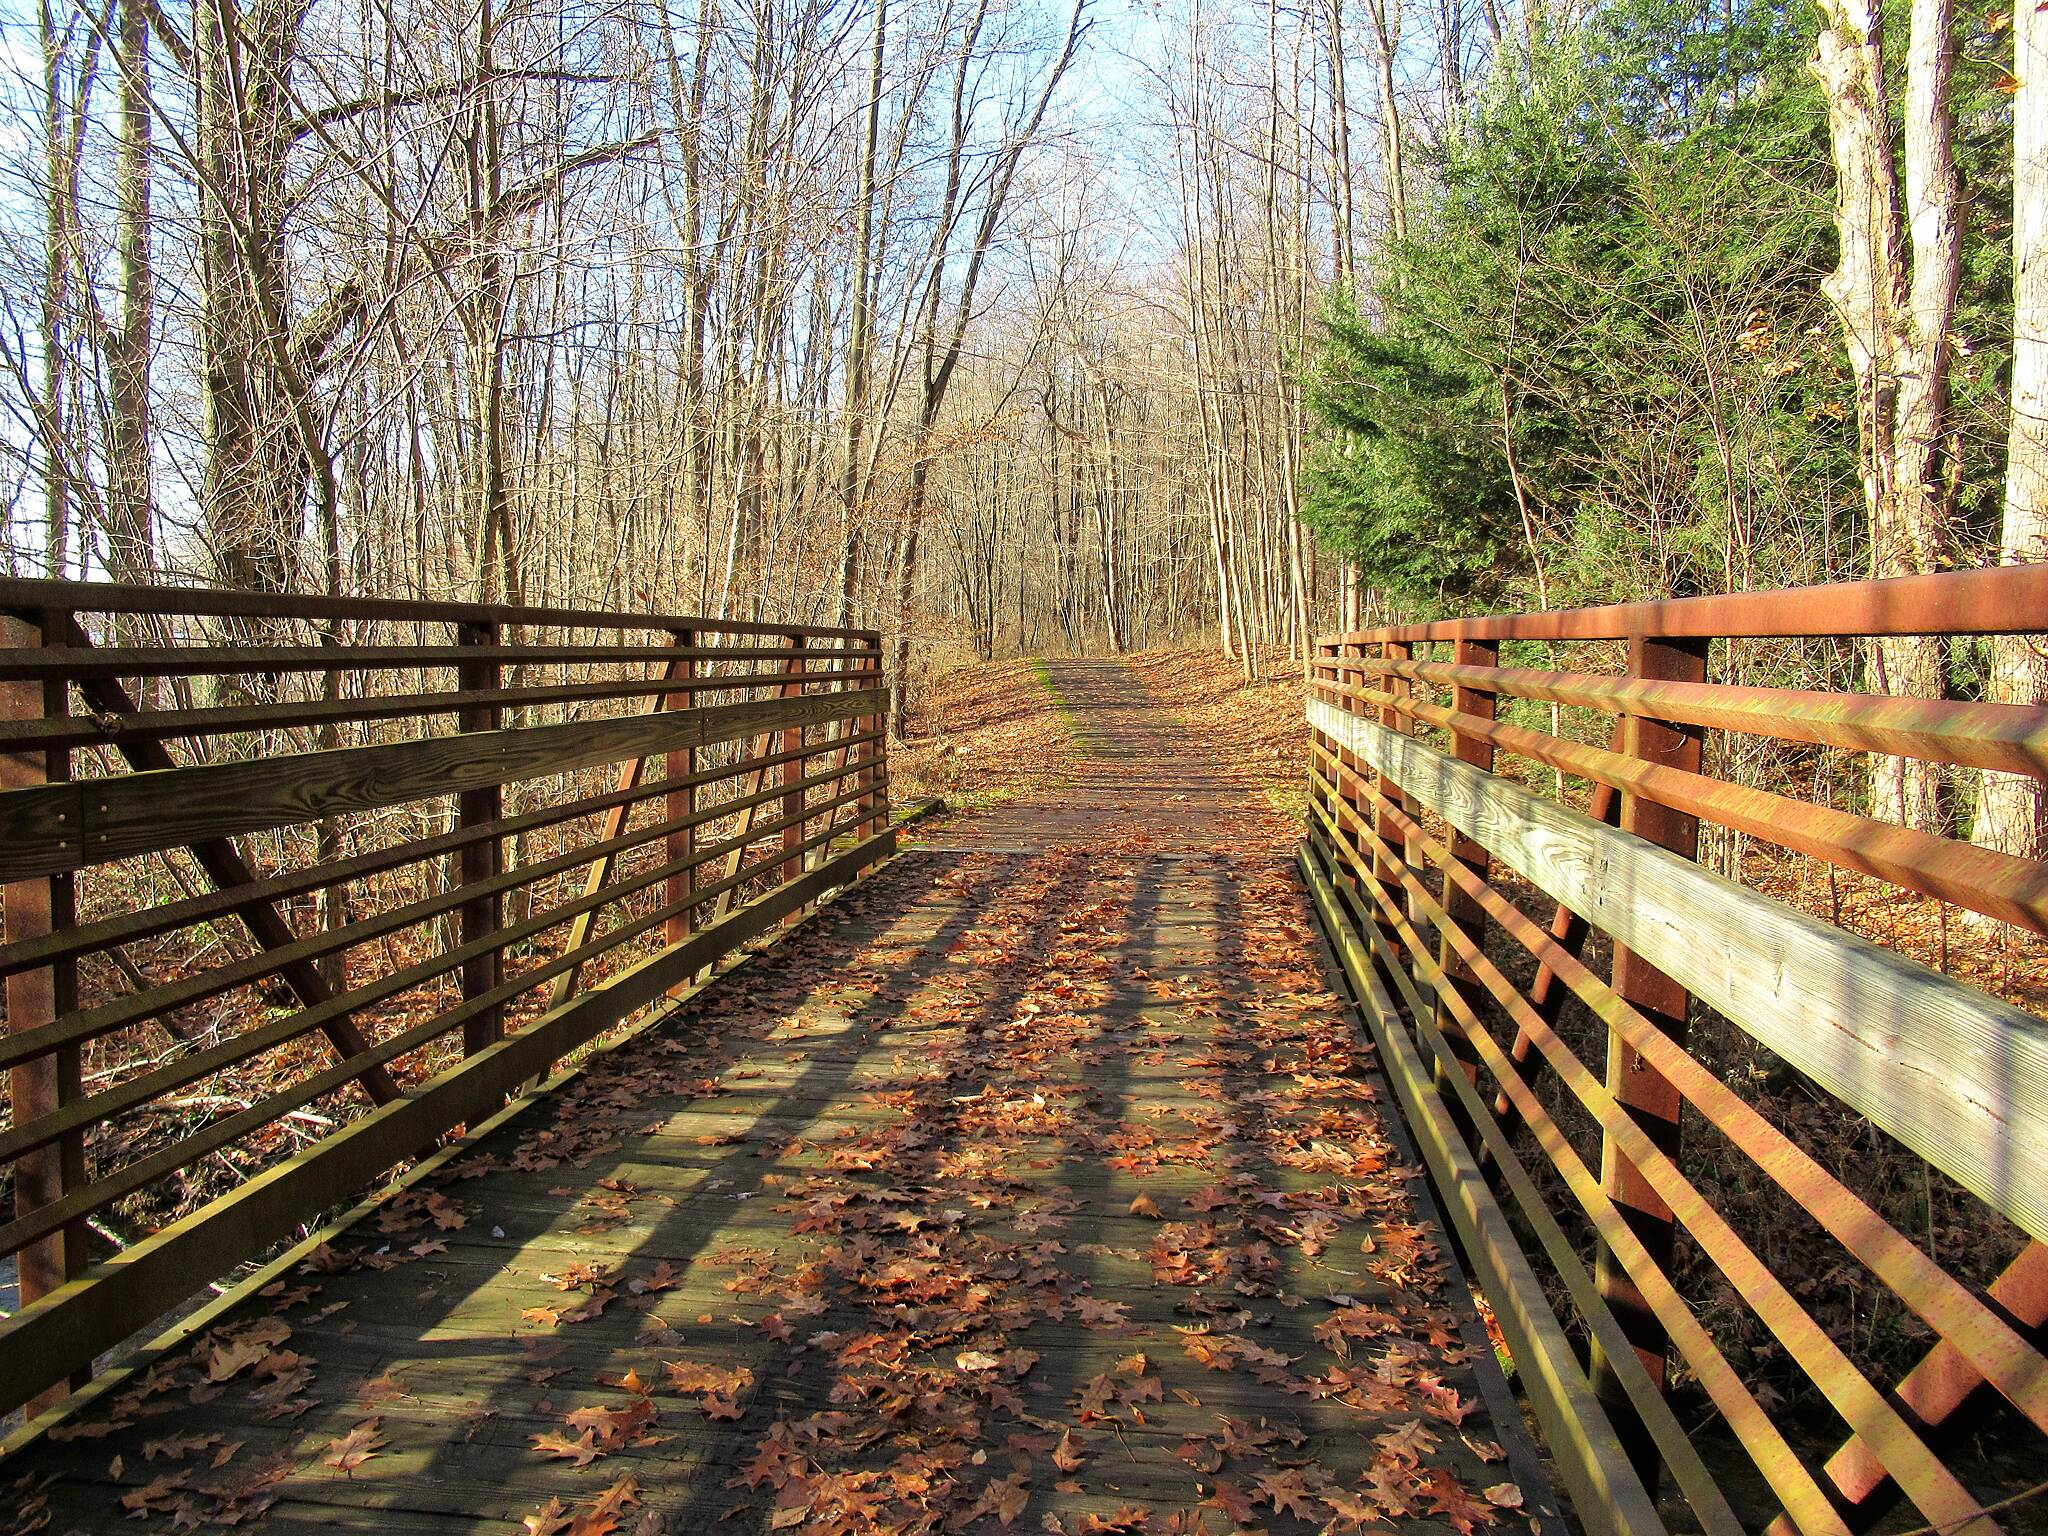 John C. Oliver Multi-Purpose Loop Trail Bridge along the trail December, 2018.  Bridge along the trail on a sunny day!